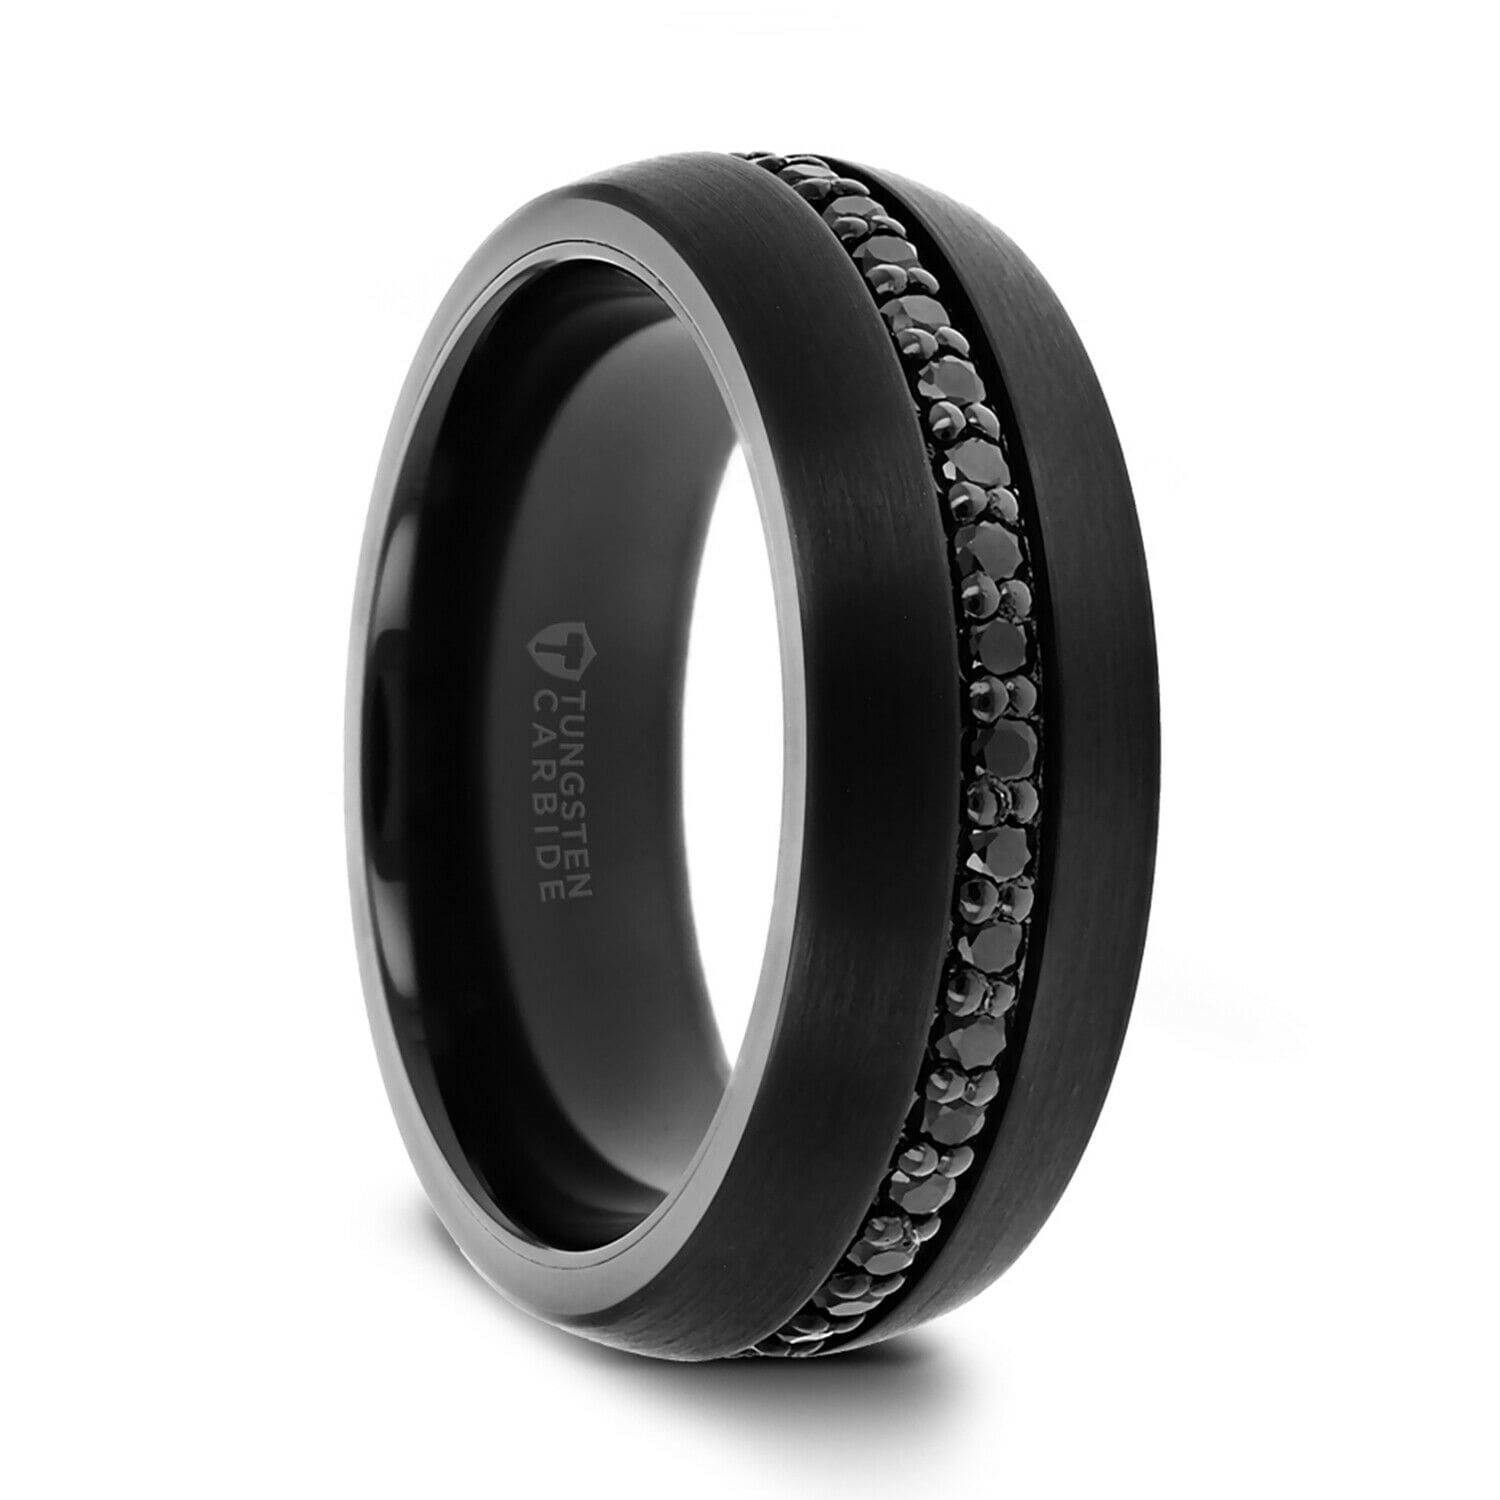 Thorsten Valiant Tungsten Rings For Men Black Tungsten Comfort Fit Wedding Ring Band With Black Sapphires 8mm